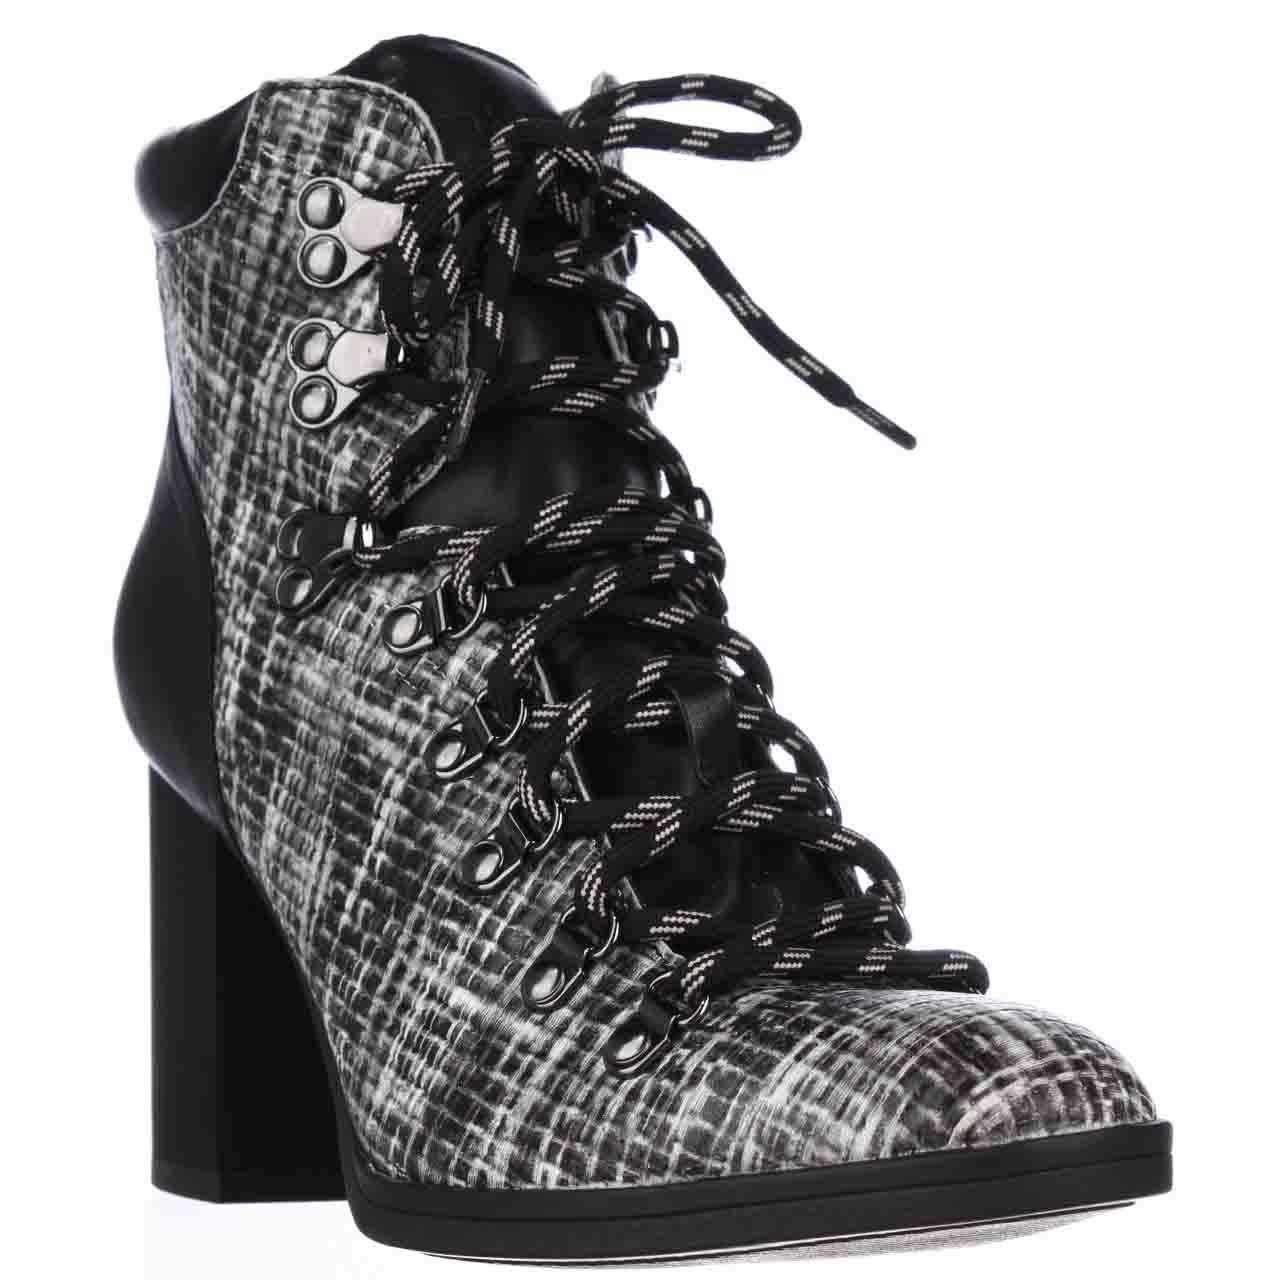 Womens Calvin Klein EveeLace Up Casual Heeled Boots - Black/Black